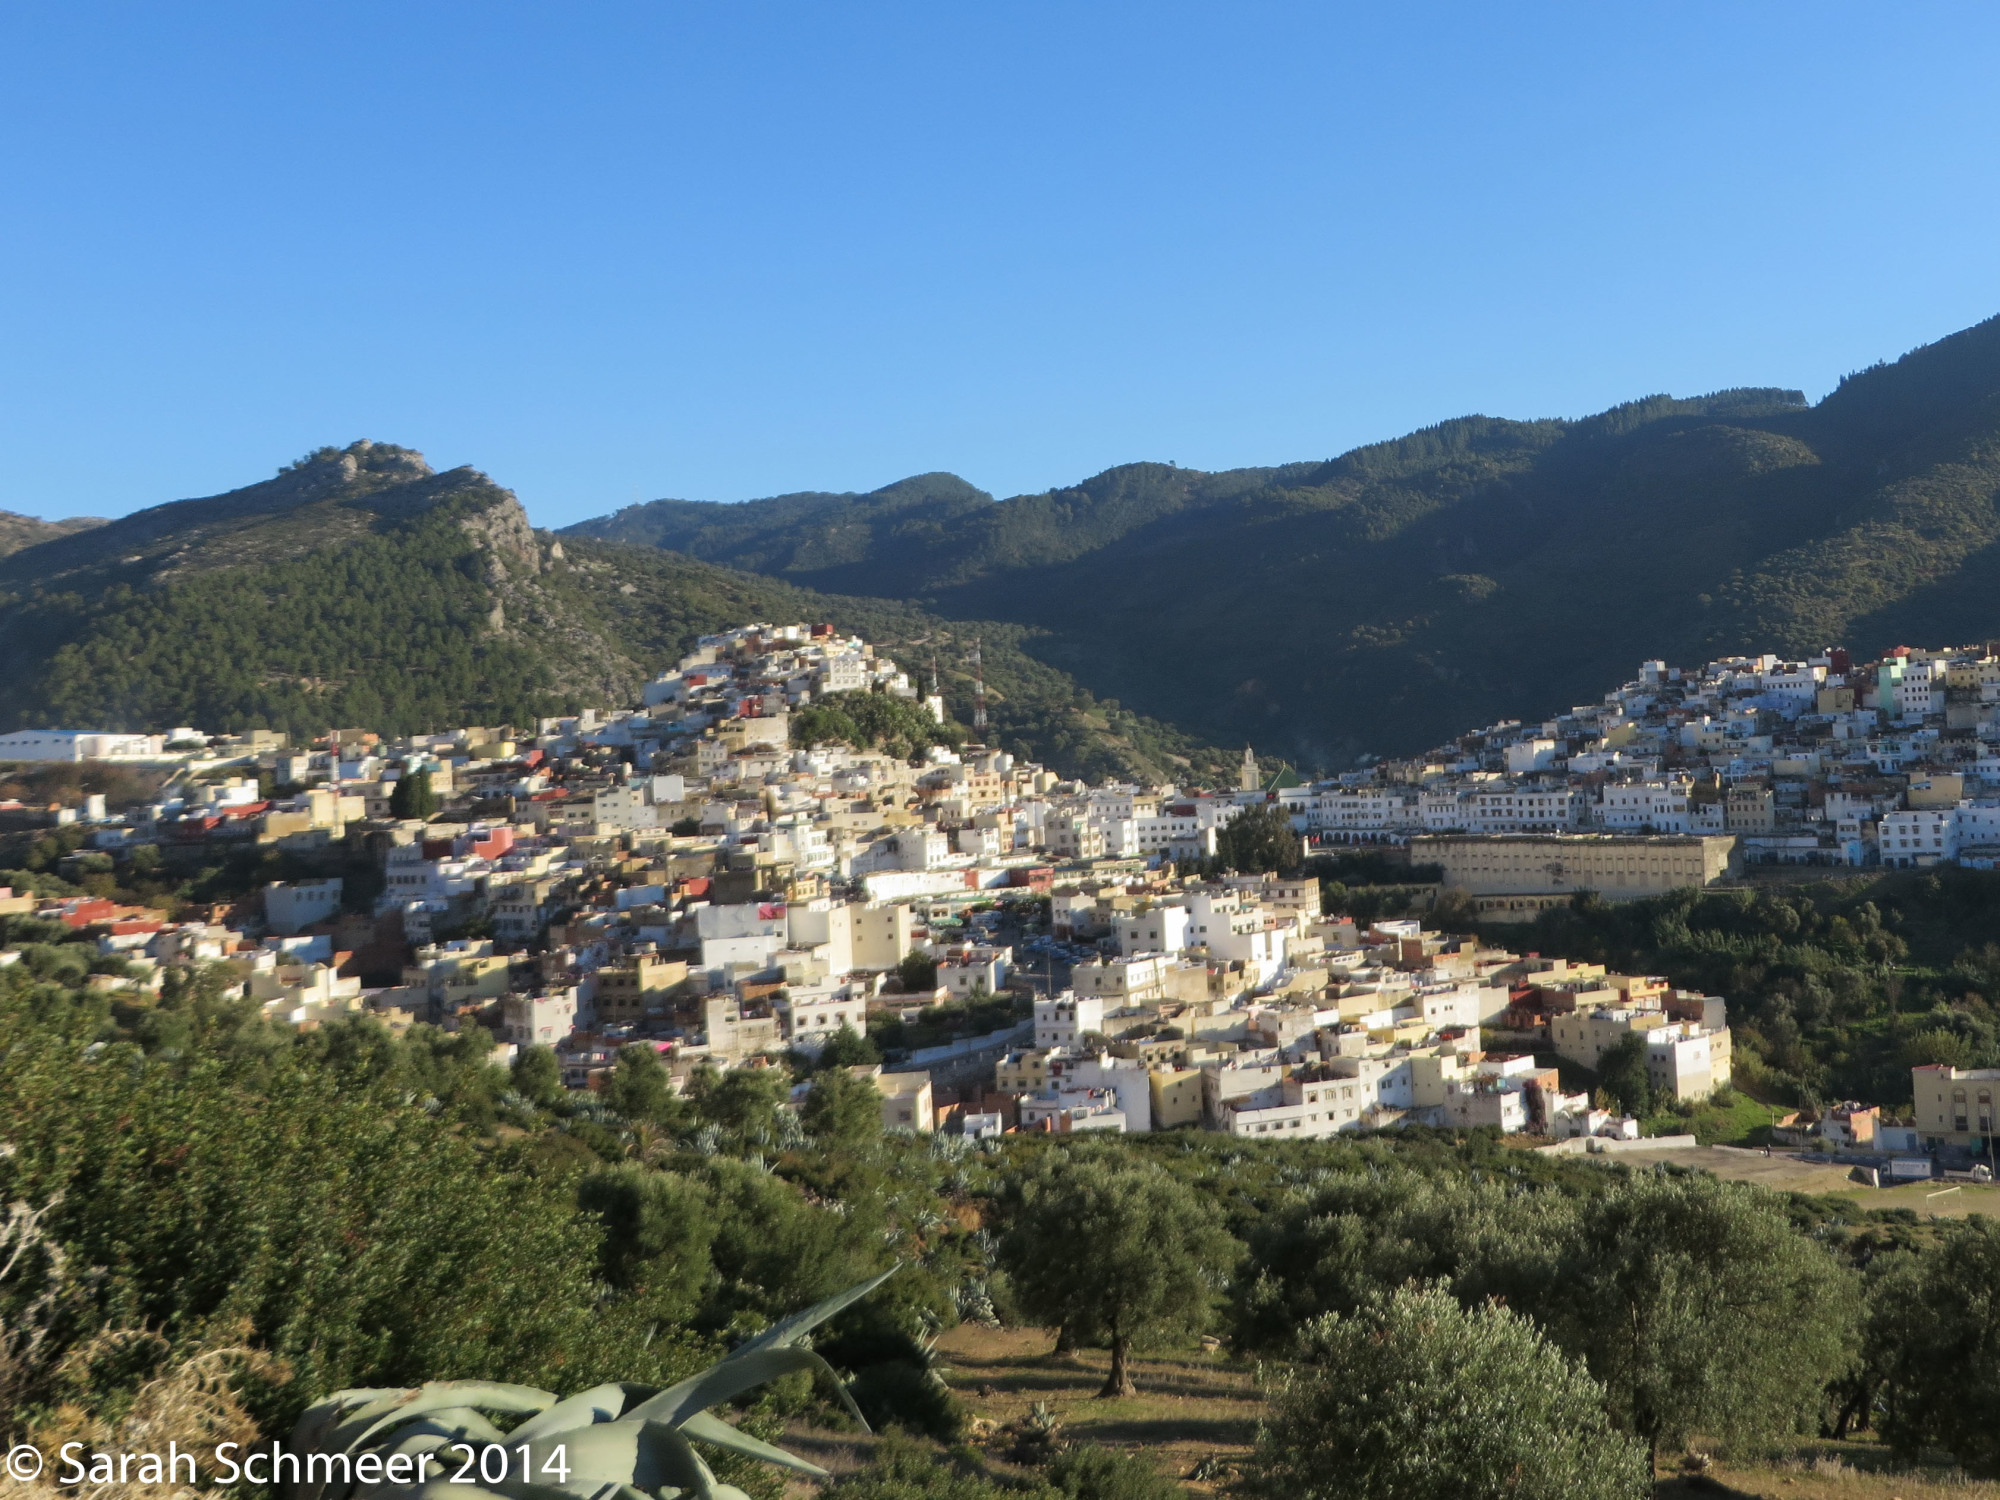 Overlooking the sprawling mountain town of Moulay Idriss, Morocco